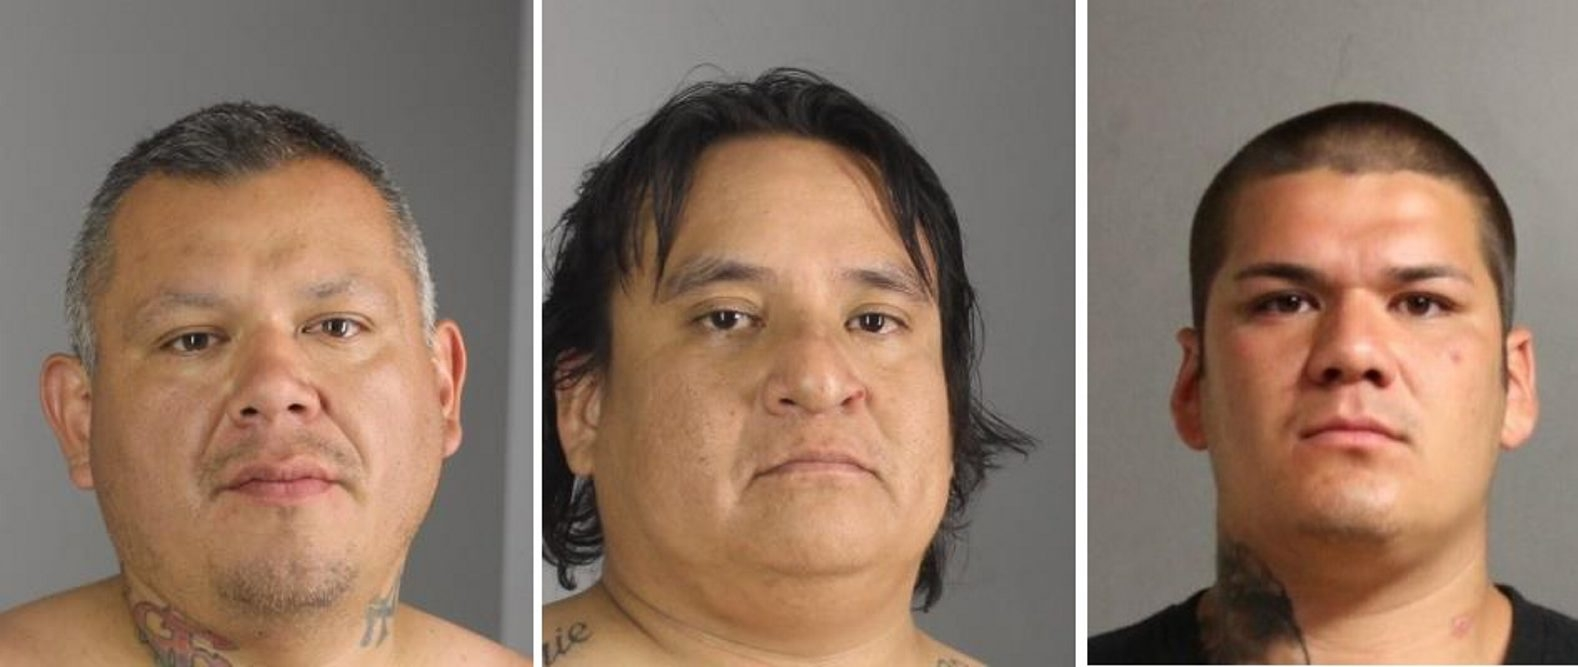 Four lines .... Charged in connection with shots fired in the Town of Collins Sunday are, from left,: Jonathan Seneca, 34 of Brant, Joshua Benton, 38, of Irving and William Larkin, 26, of Evans. (Photos provided by Erie County Sheriff's Department)